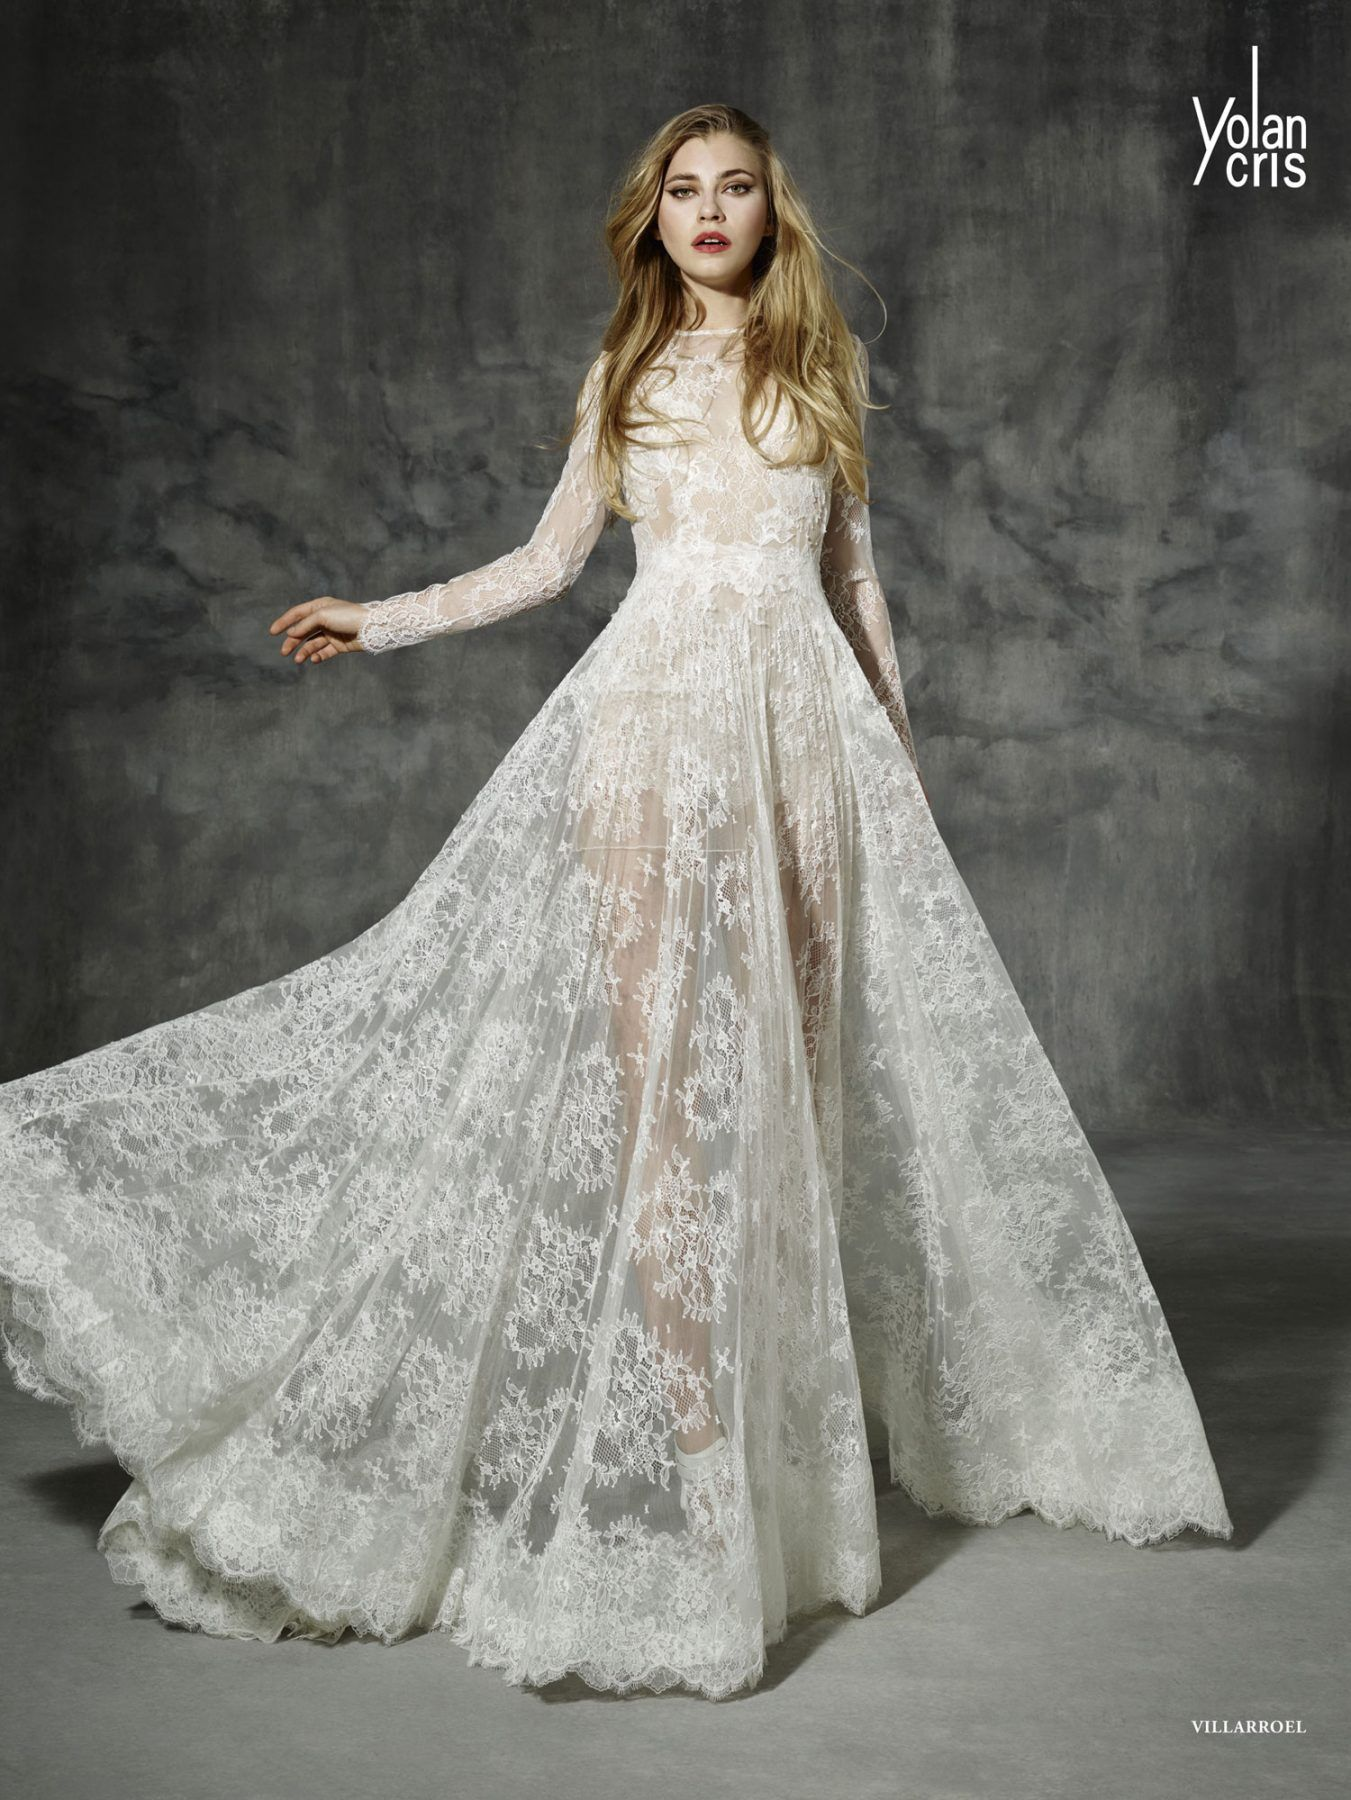 Boho lace sleeve wedding dress made of high quality french chantilly